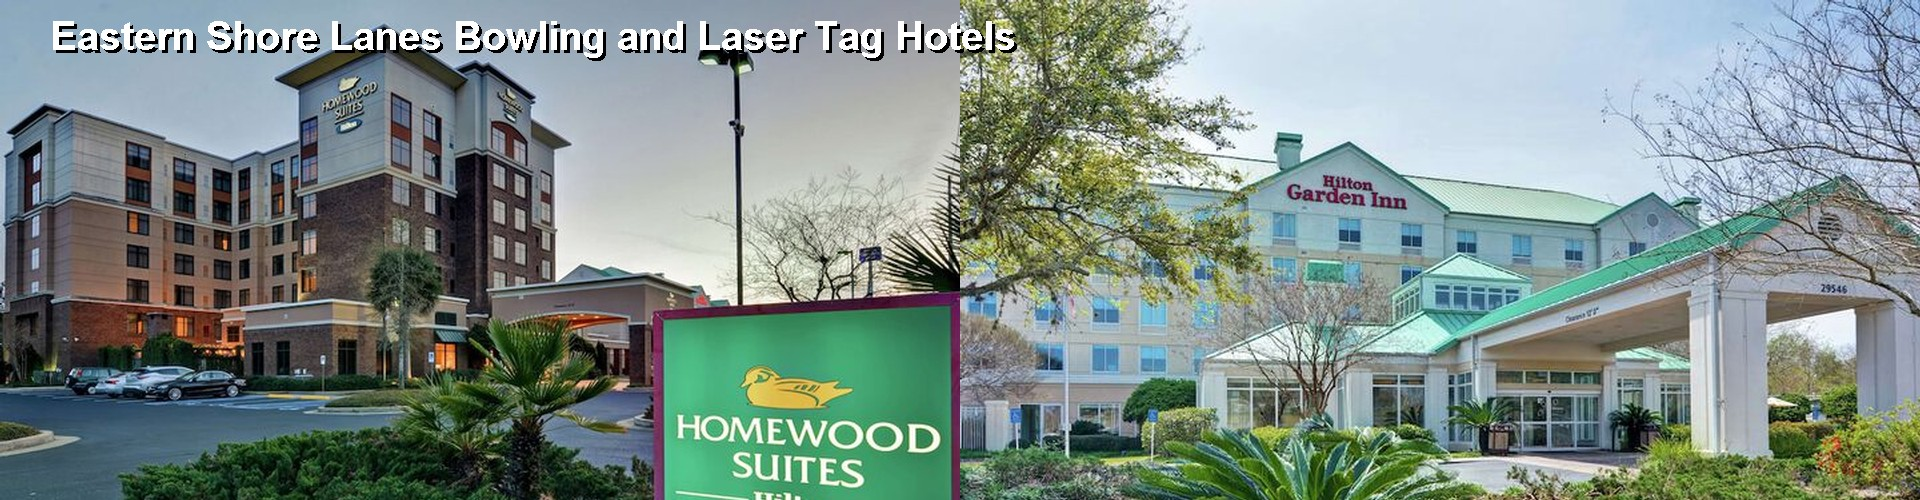 5 Best Hotels near Eastern Shore Lanes Bowling and Laser Tag